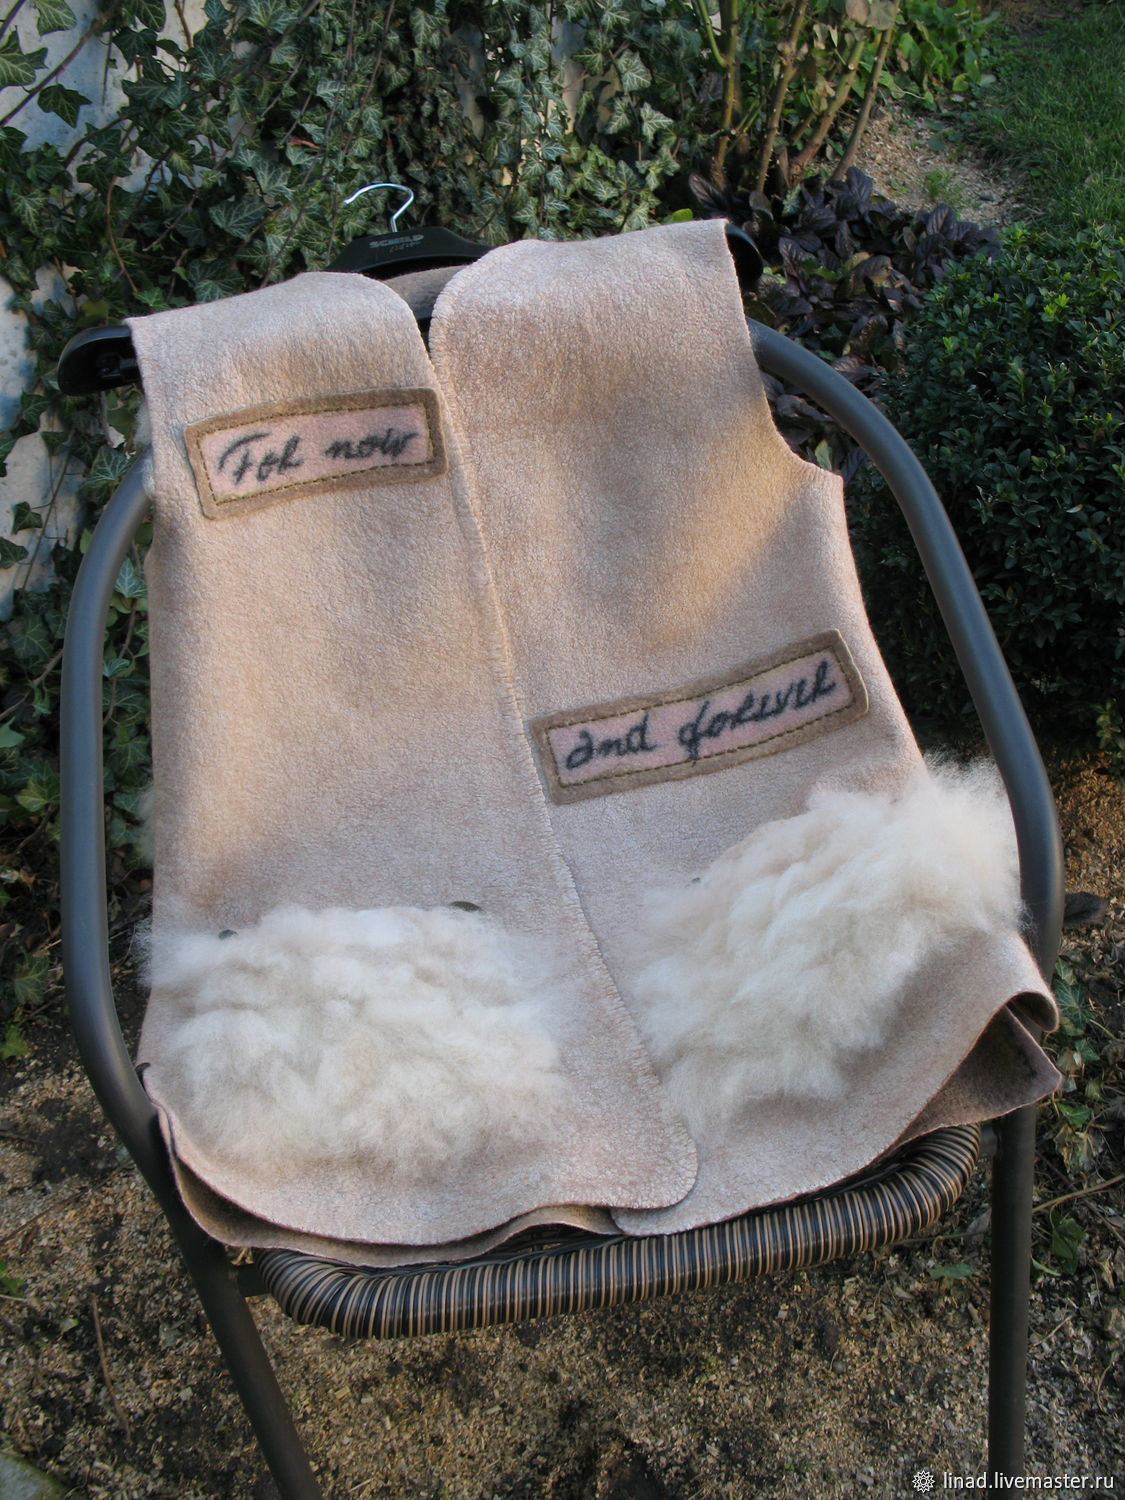 Felted vest ' Now and Forever', Vests, Kherson,  Фото №1